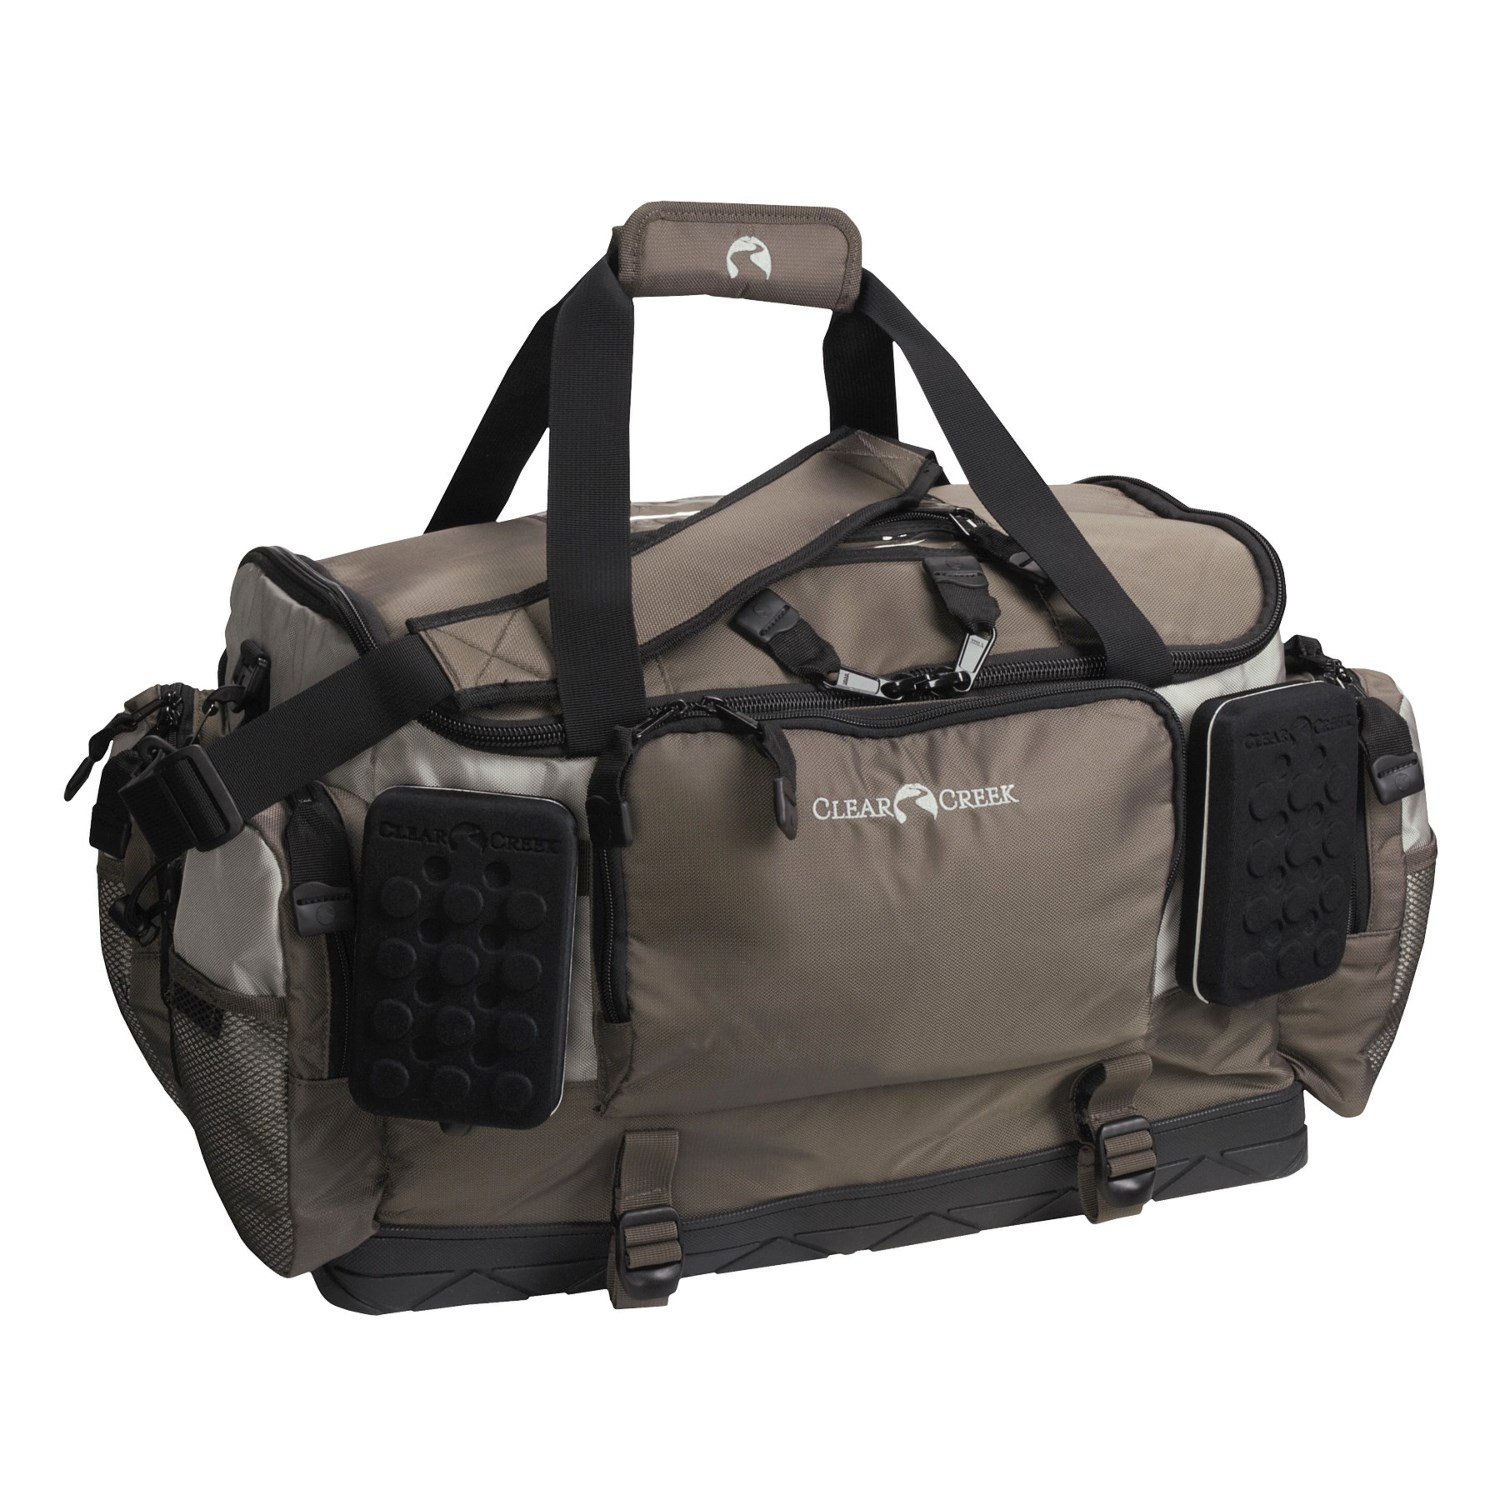 Clear creek the rush creek fly fishing gear bag w fly for Fly fishing gear closeouts